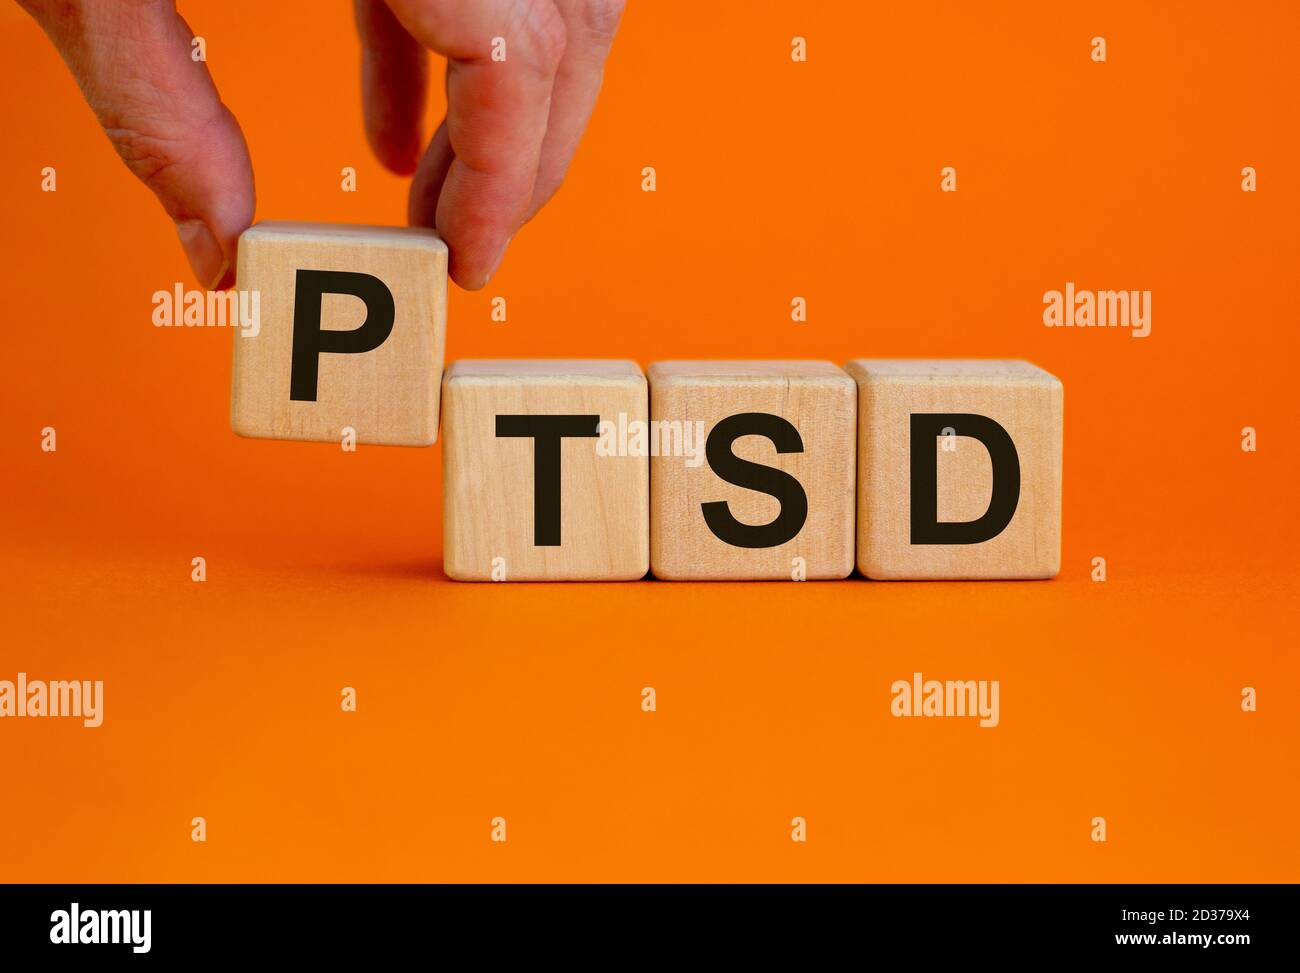 Concept words 'PTSD, post-traumatic stress disorder' on cubes on a beautiful orange background. Male hand. Copy space. Stock Photo